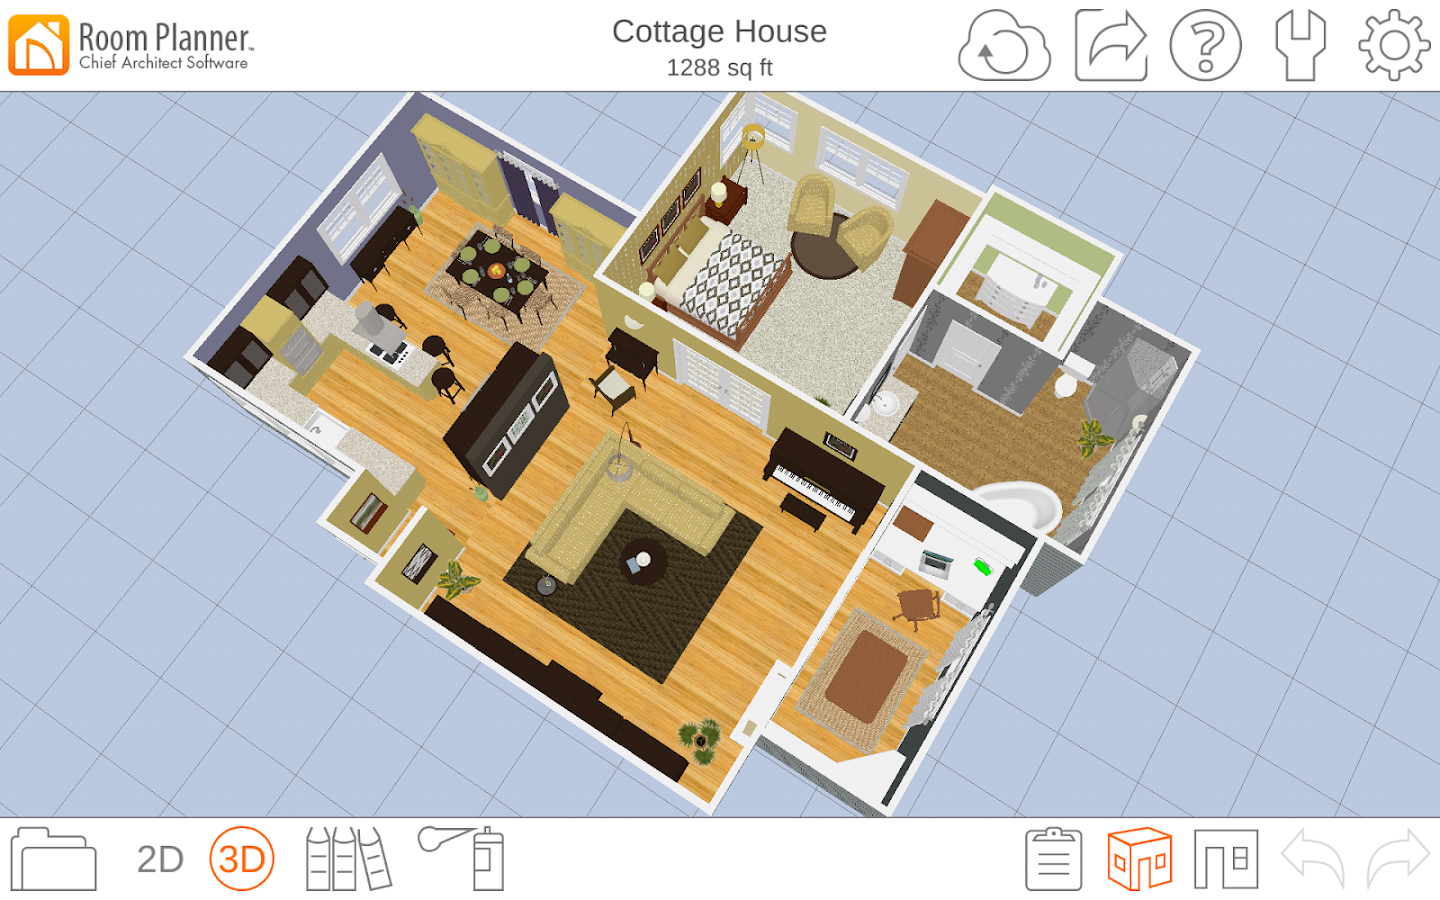 Room planner home design android apps on google play for Home plan architect